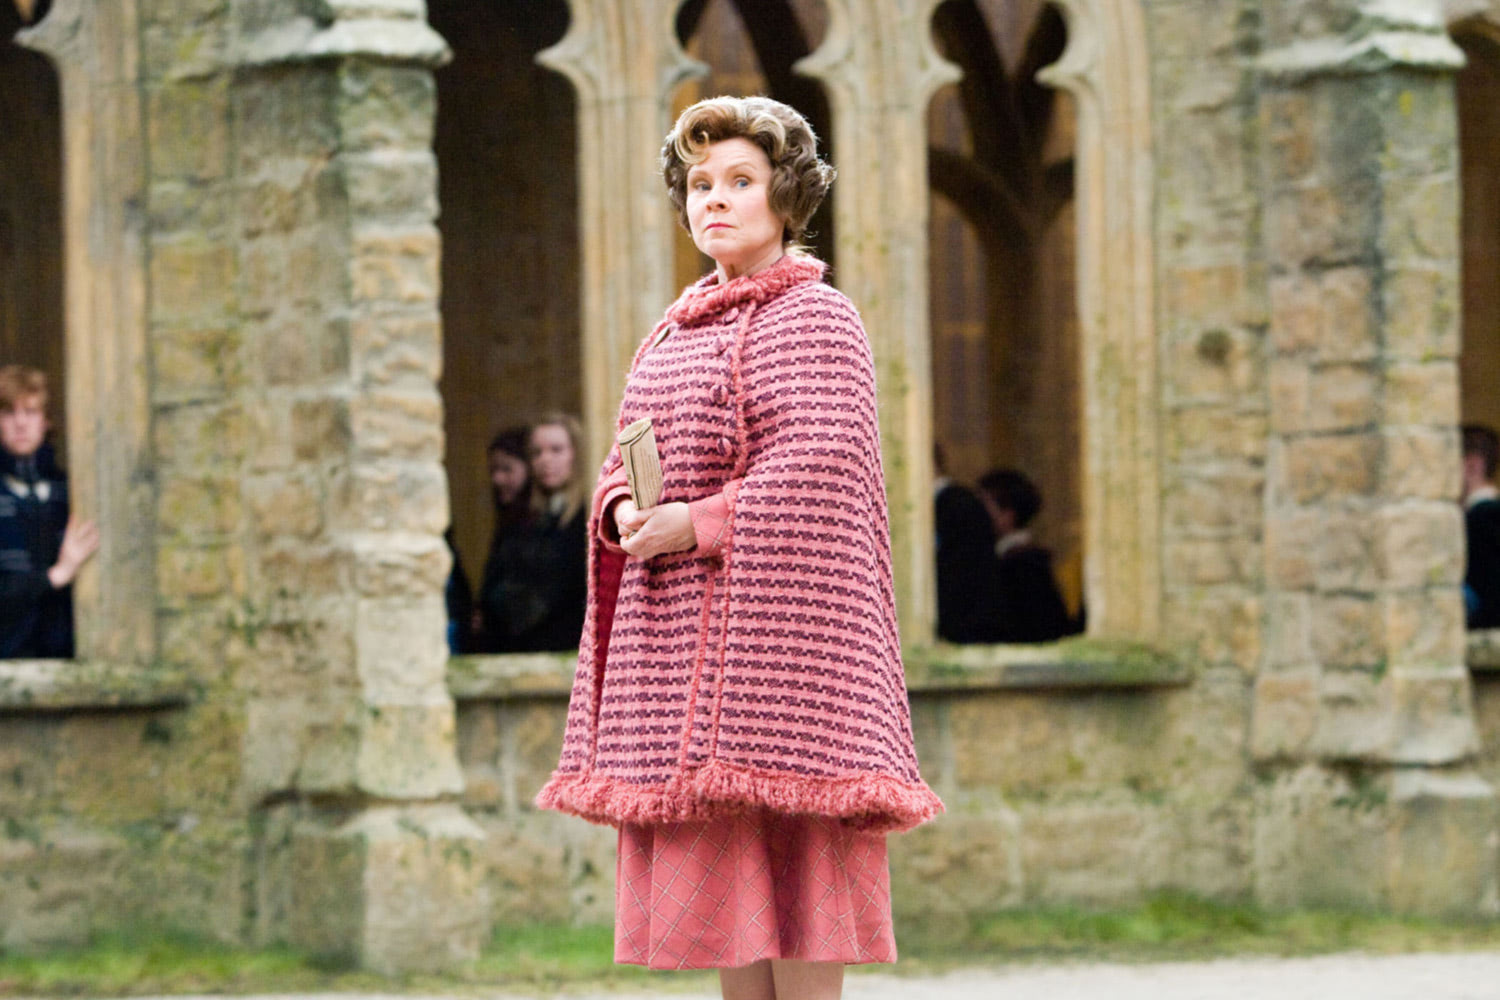 Umbridge in the grounds